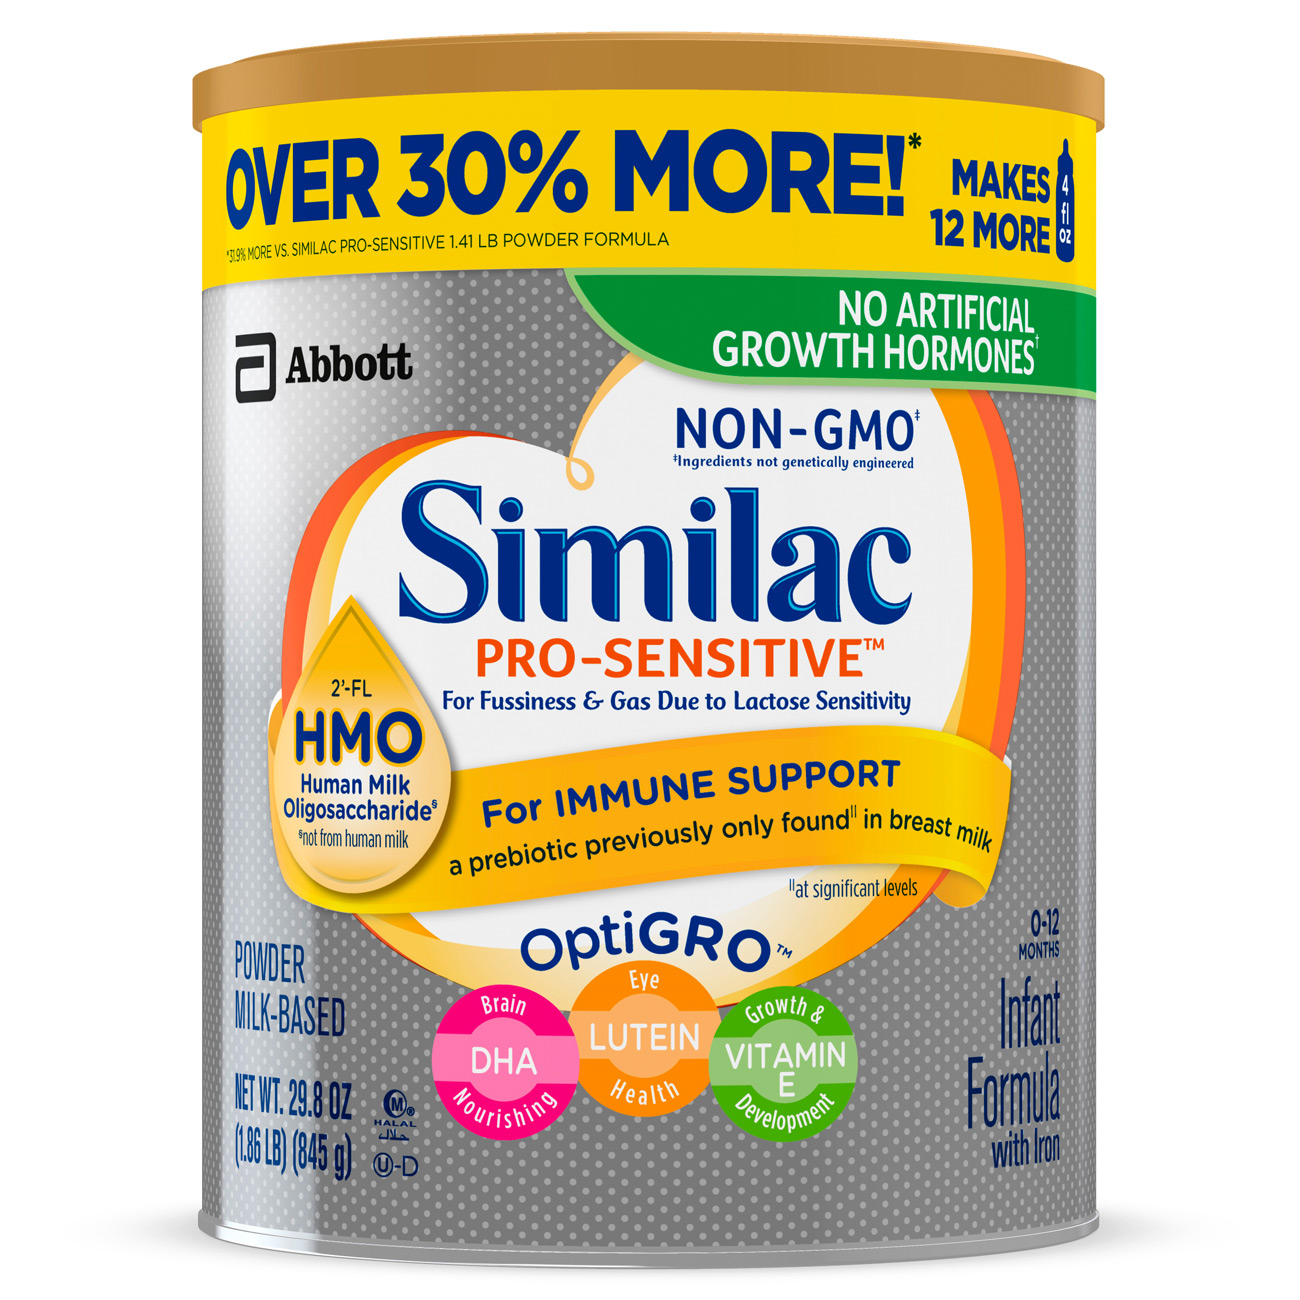 Similac Pro-Sensitive Non-GMO with 2'-FL HMO Infant Formula with Iron for Immune Support, Baby Formula 29.8 oz... by Similac